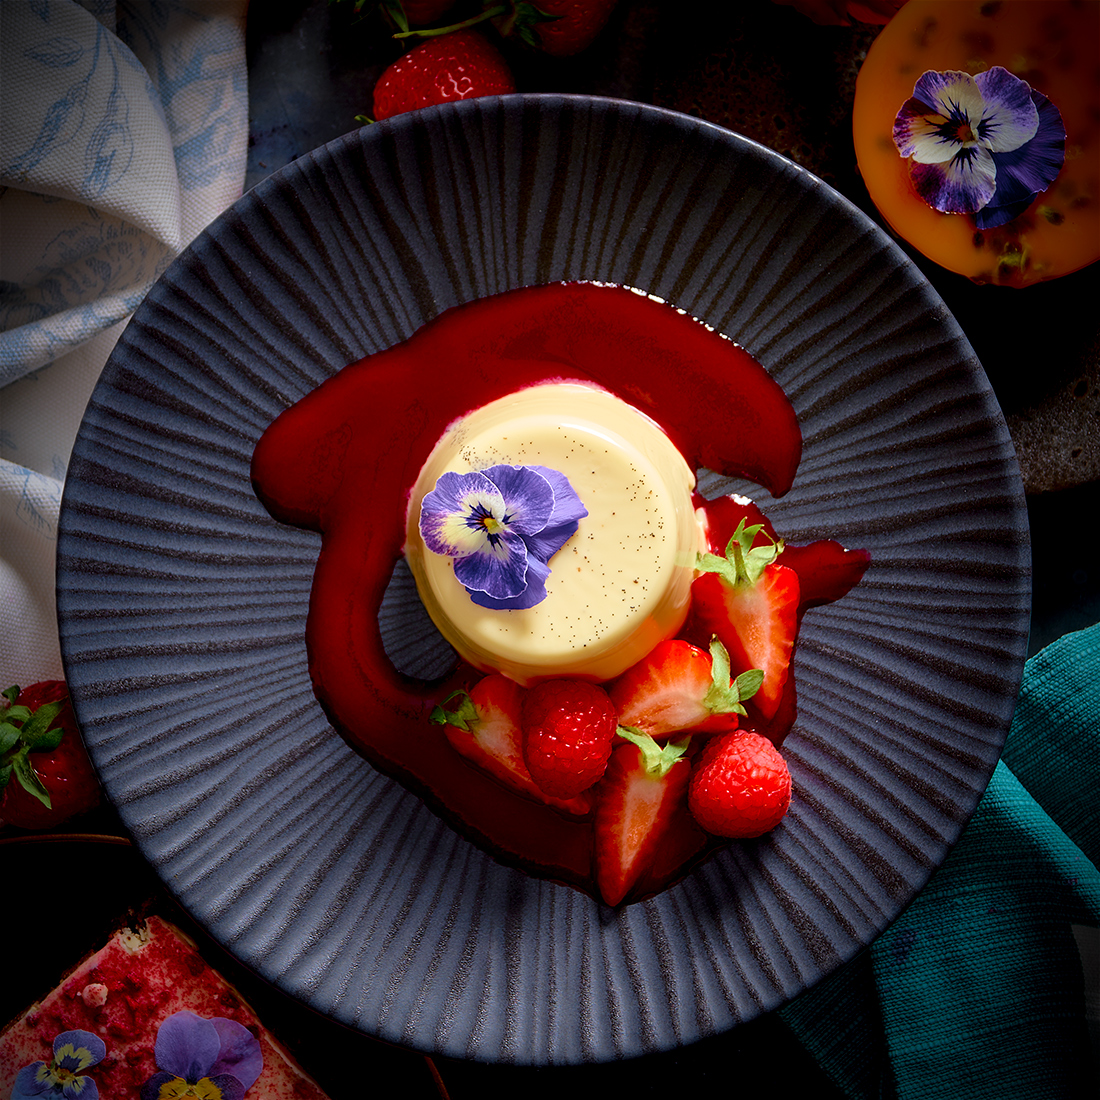 Spiced Rum Panna Cotta with Summer Berries